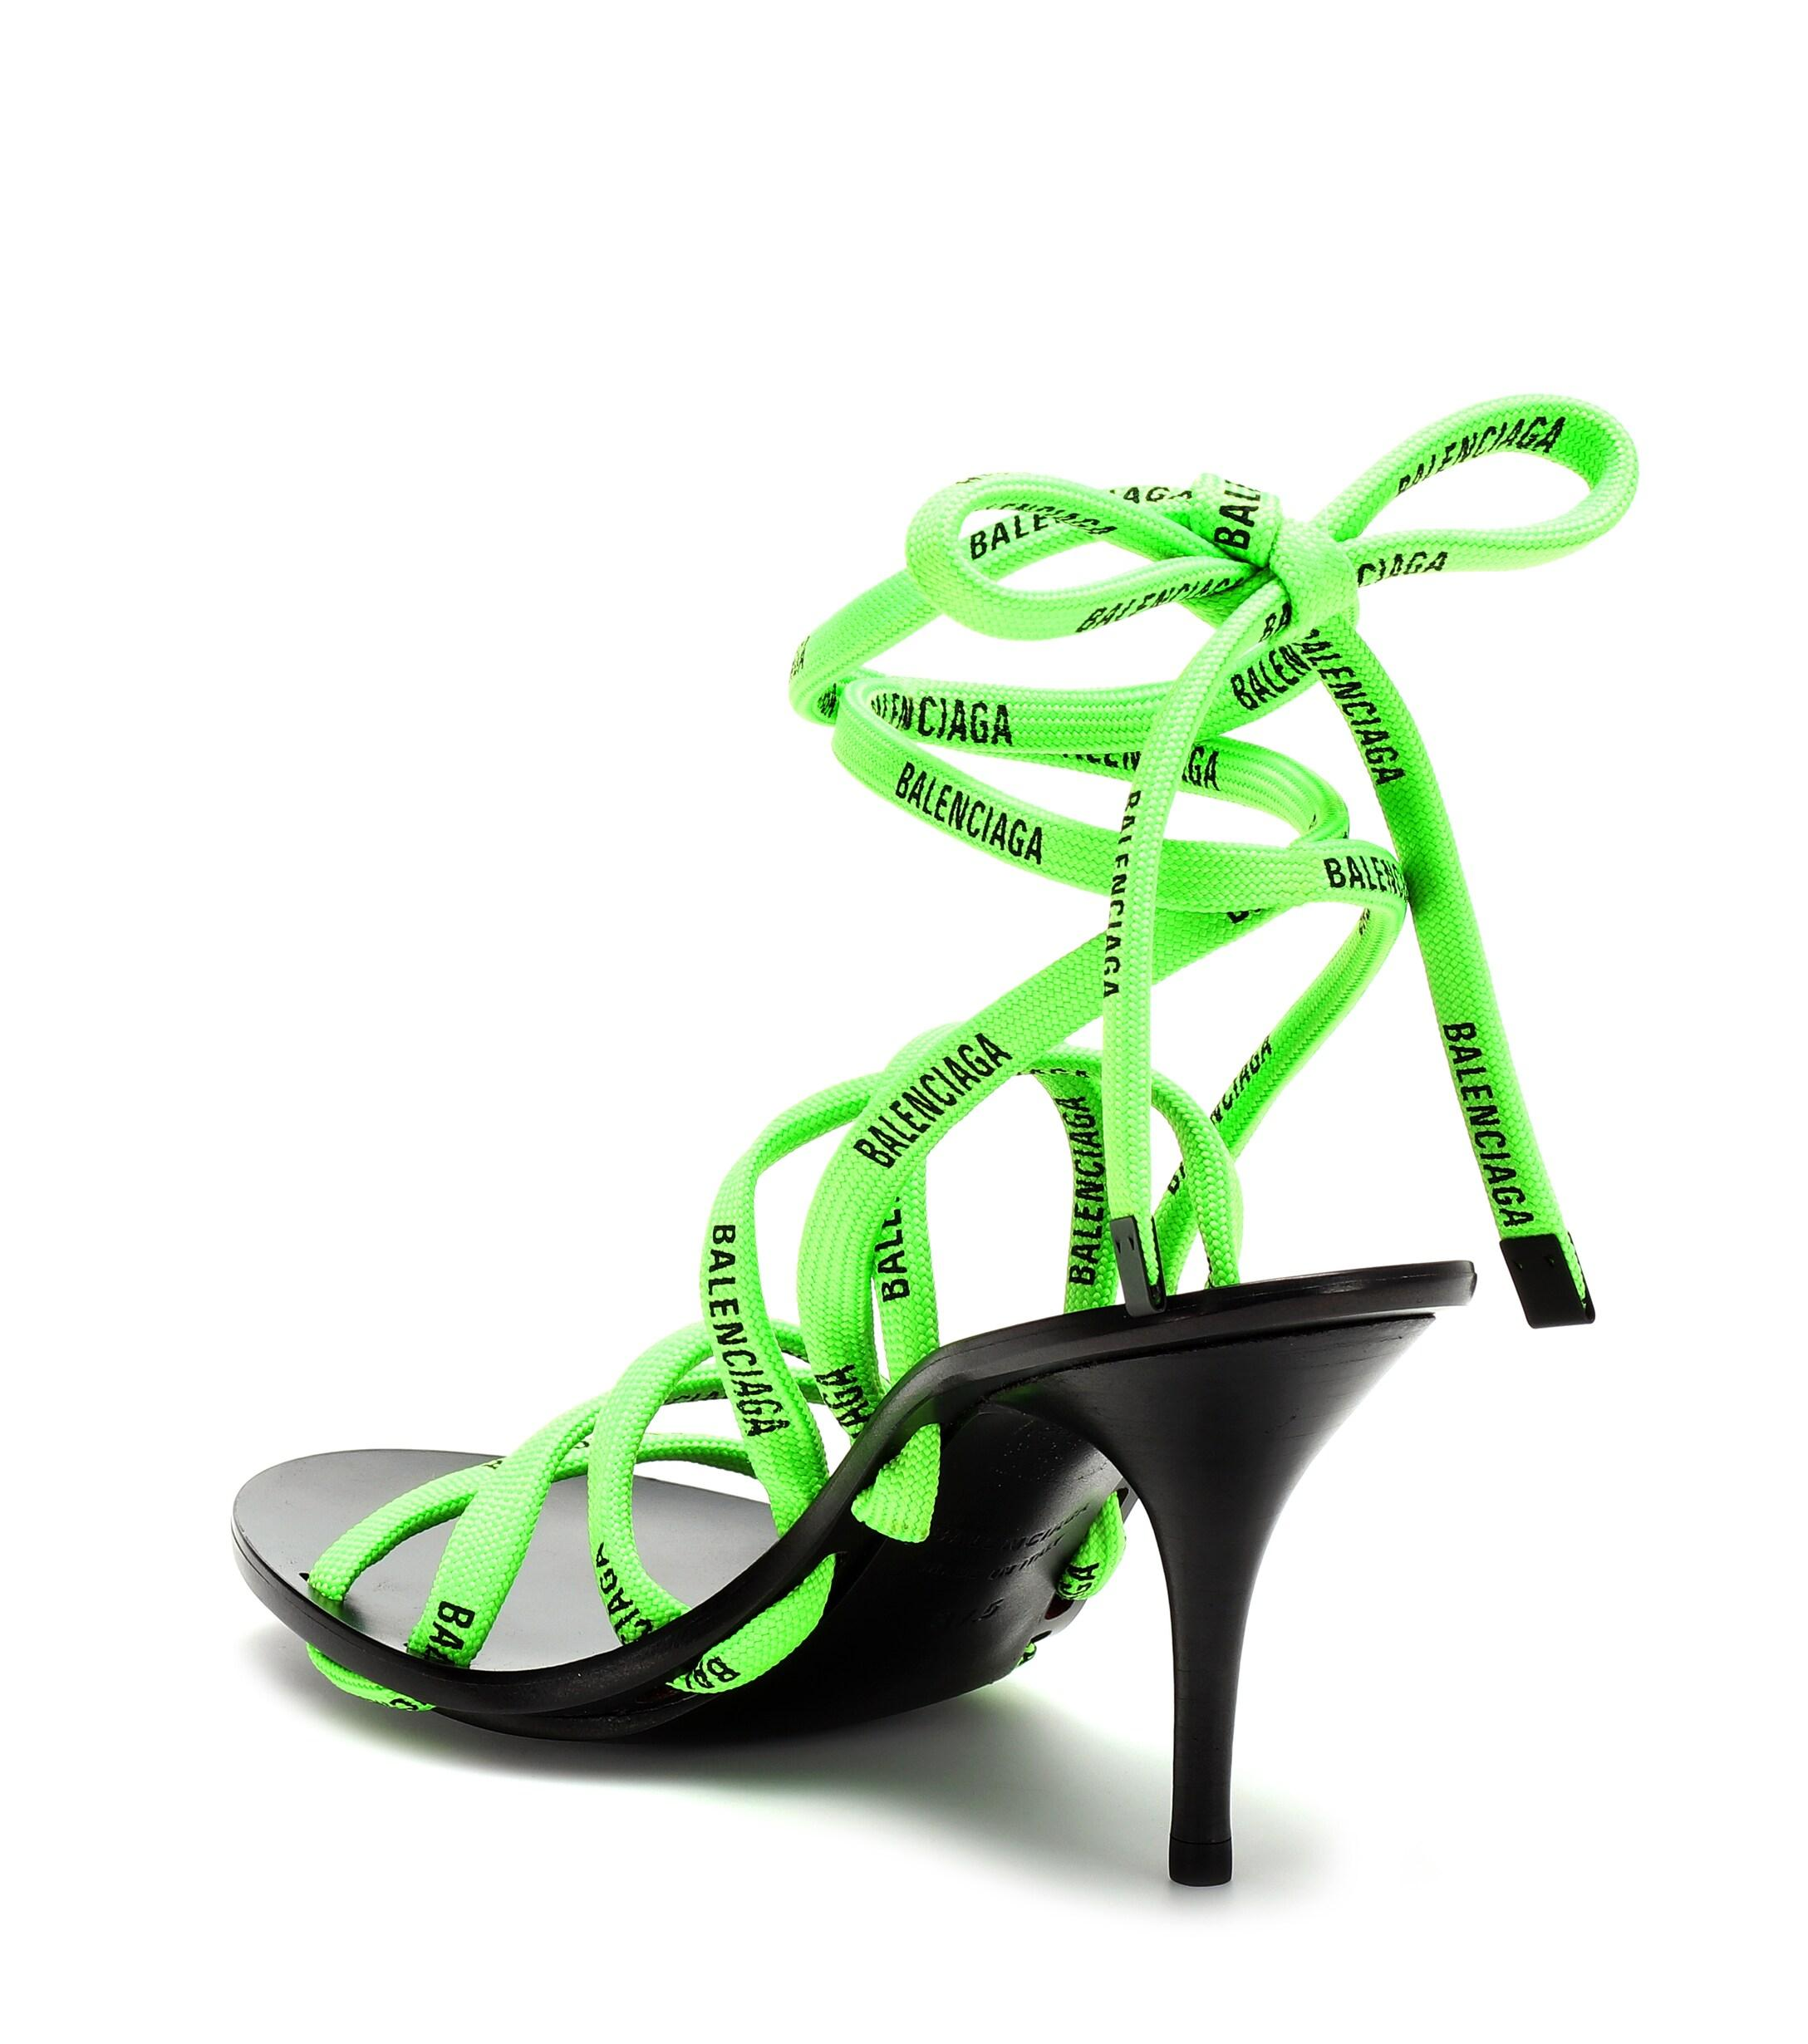 Balenciaga Lace-up Sandals in Black